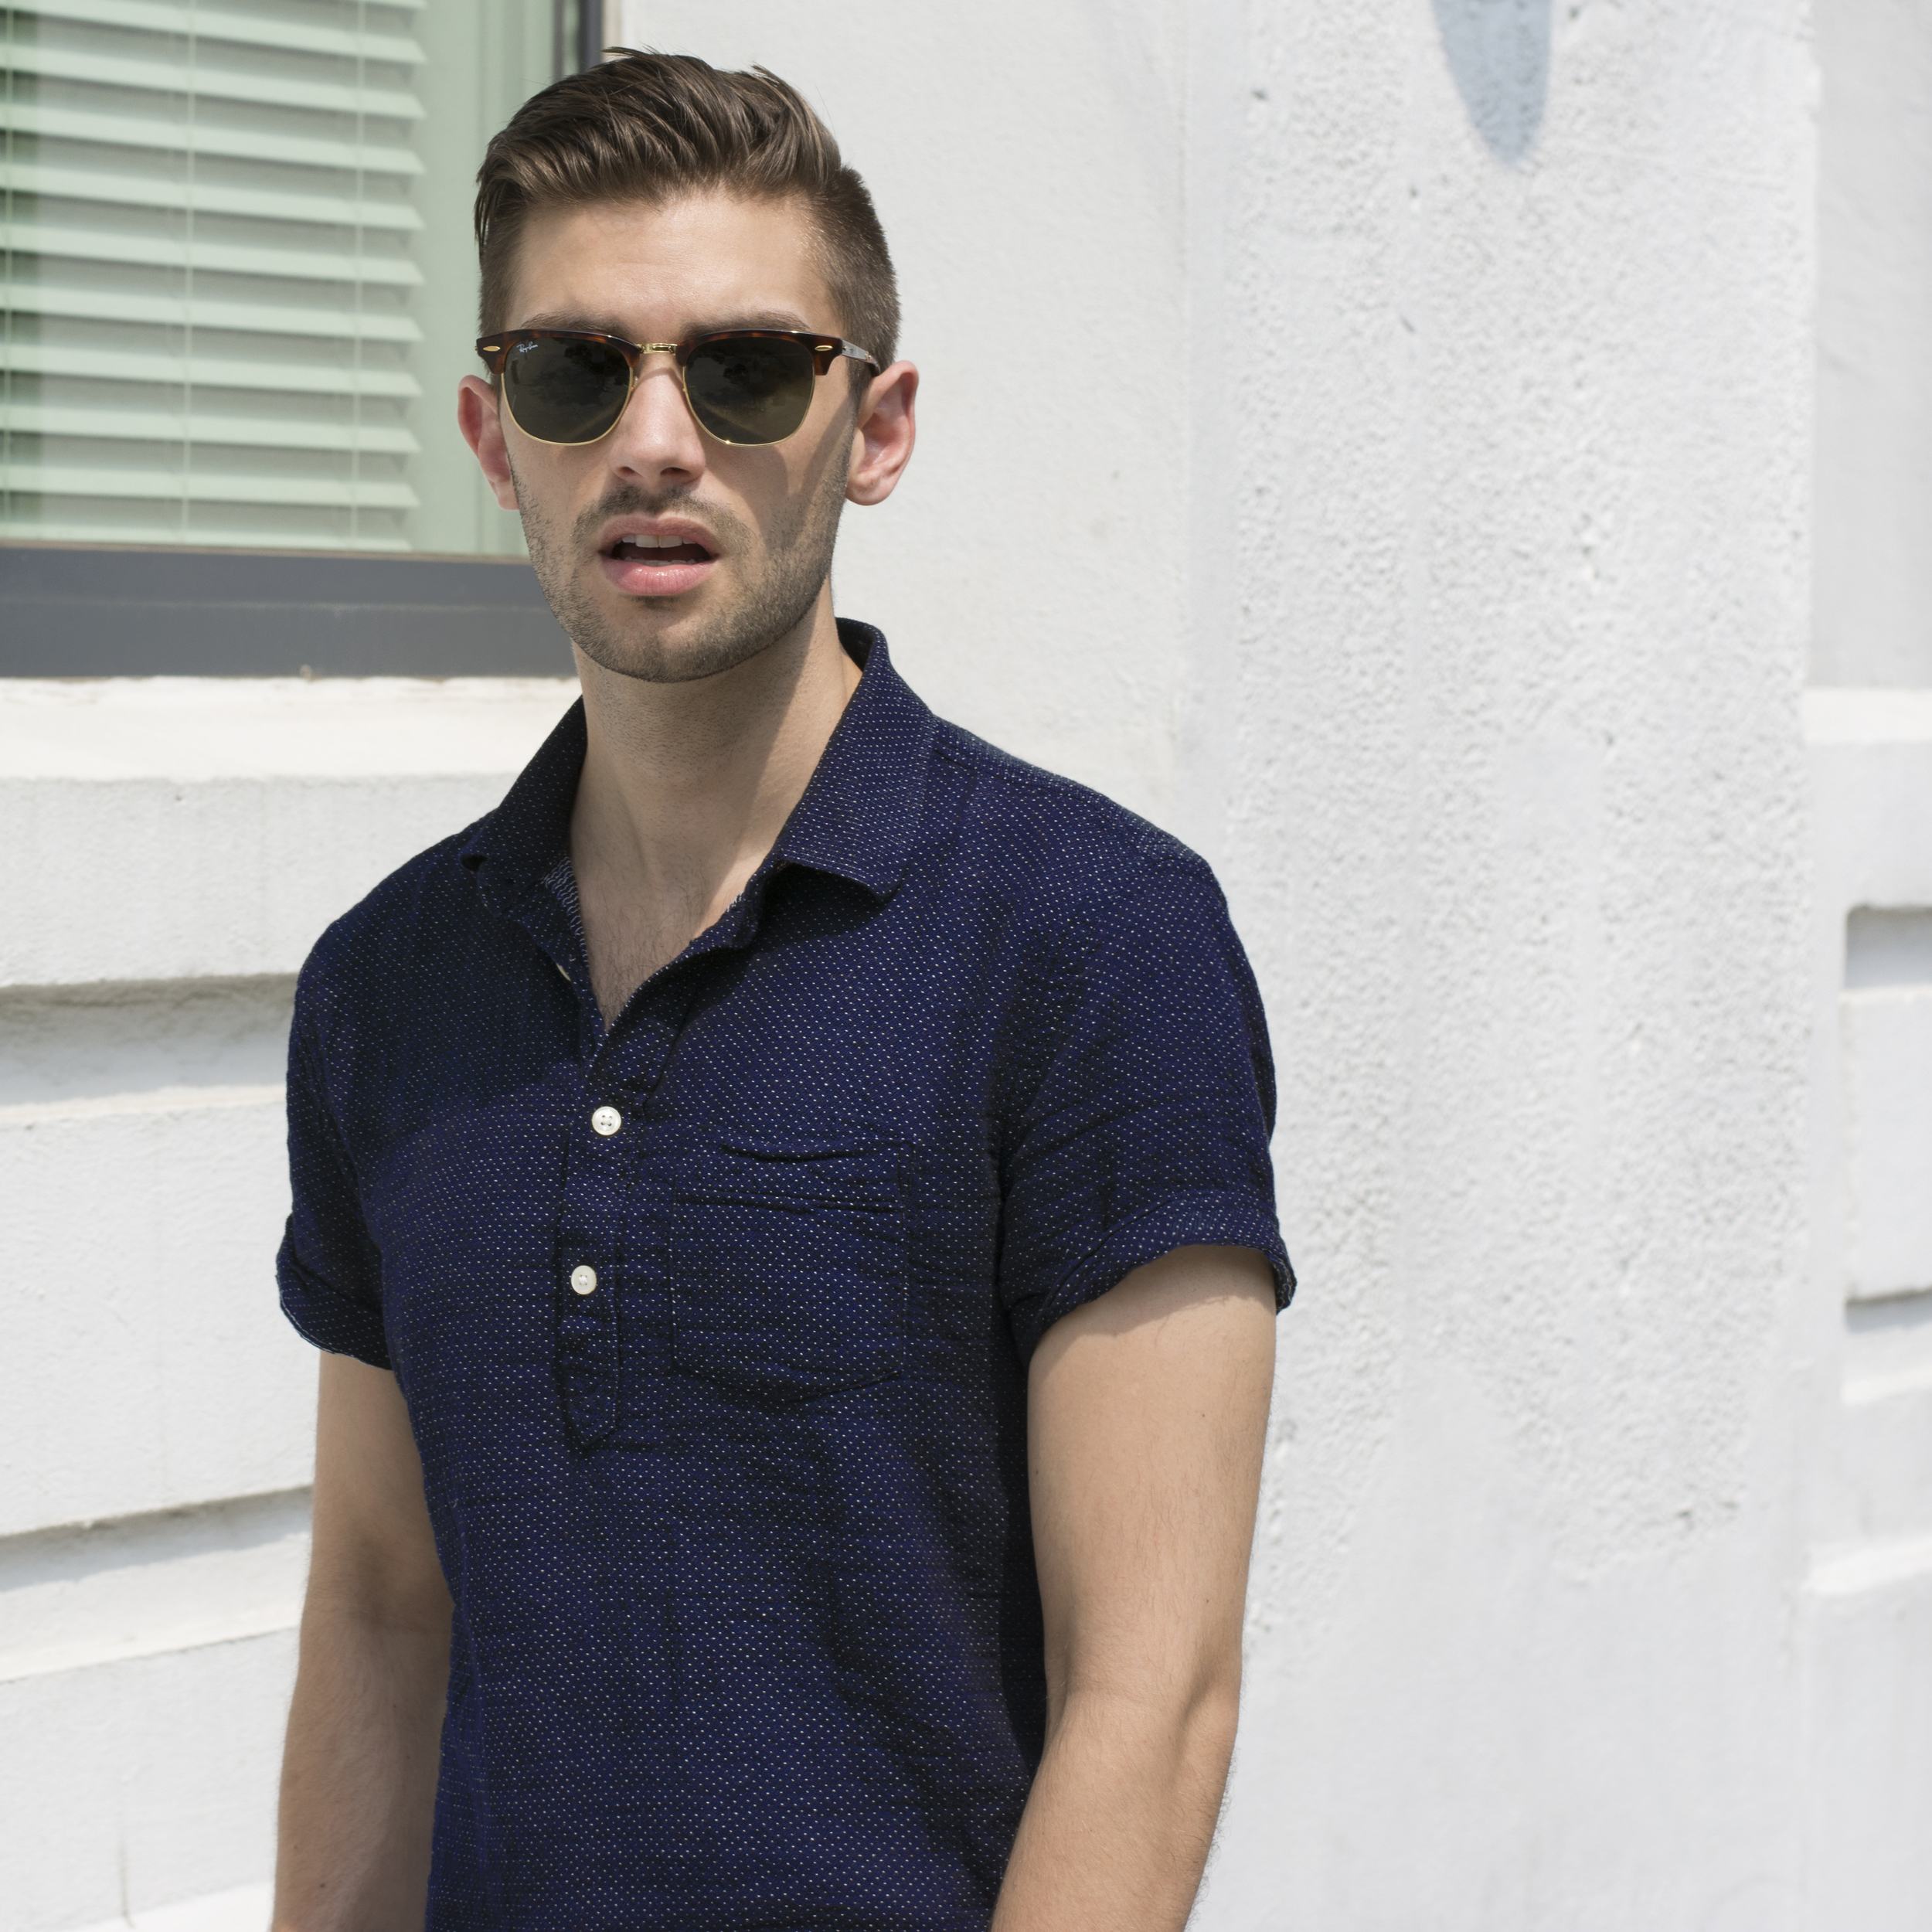 The Modern Otter | #menswear #mensfashion #summerstyle